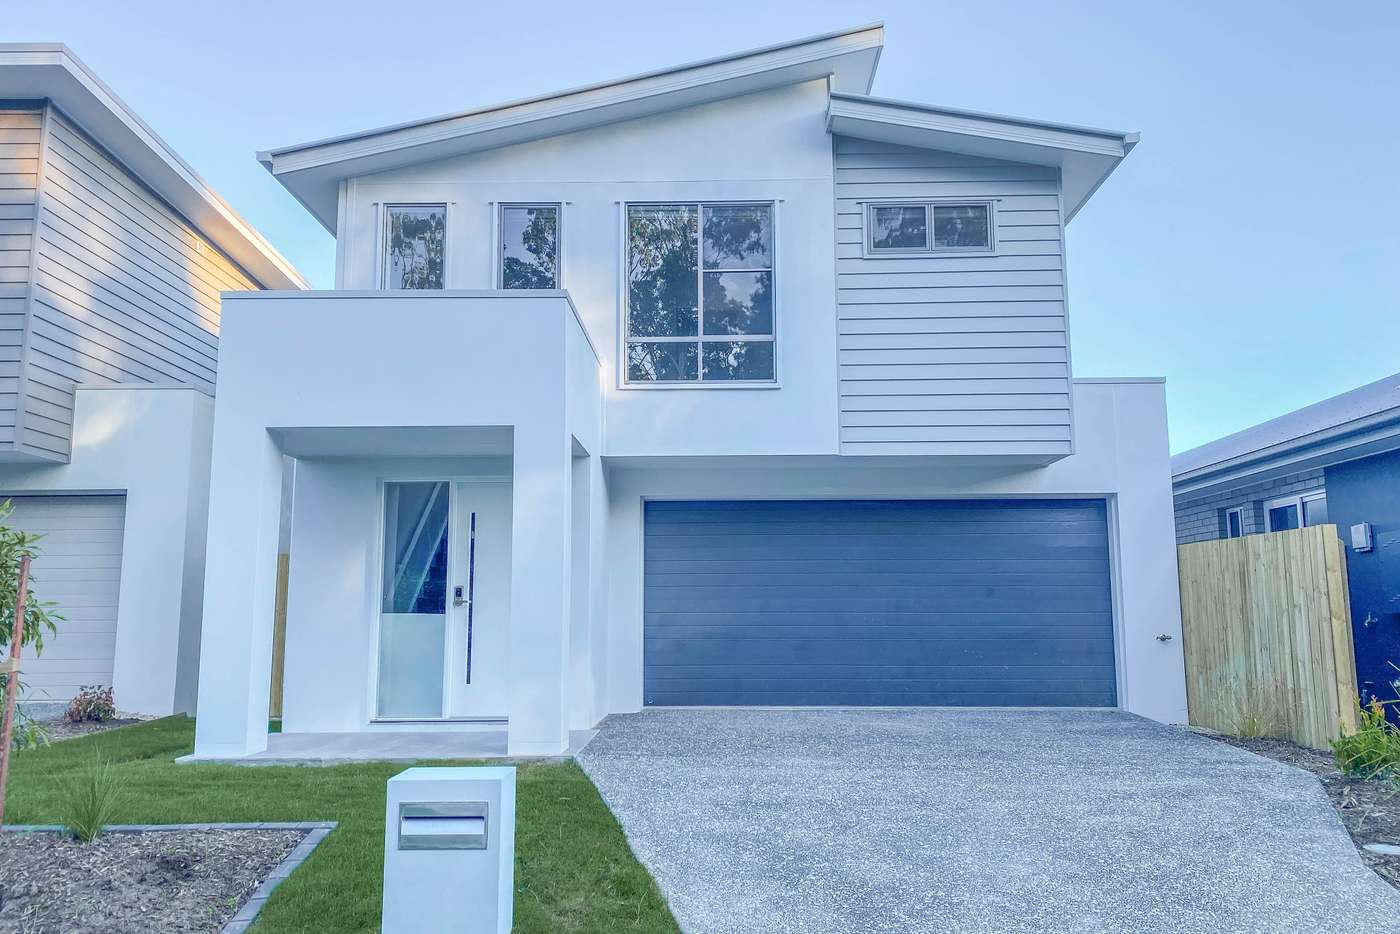 Main view of Homely house listing, 25 Forrestdale Street, Coomera QLD 4209